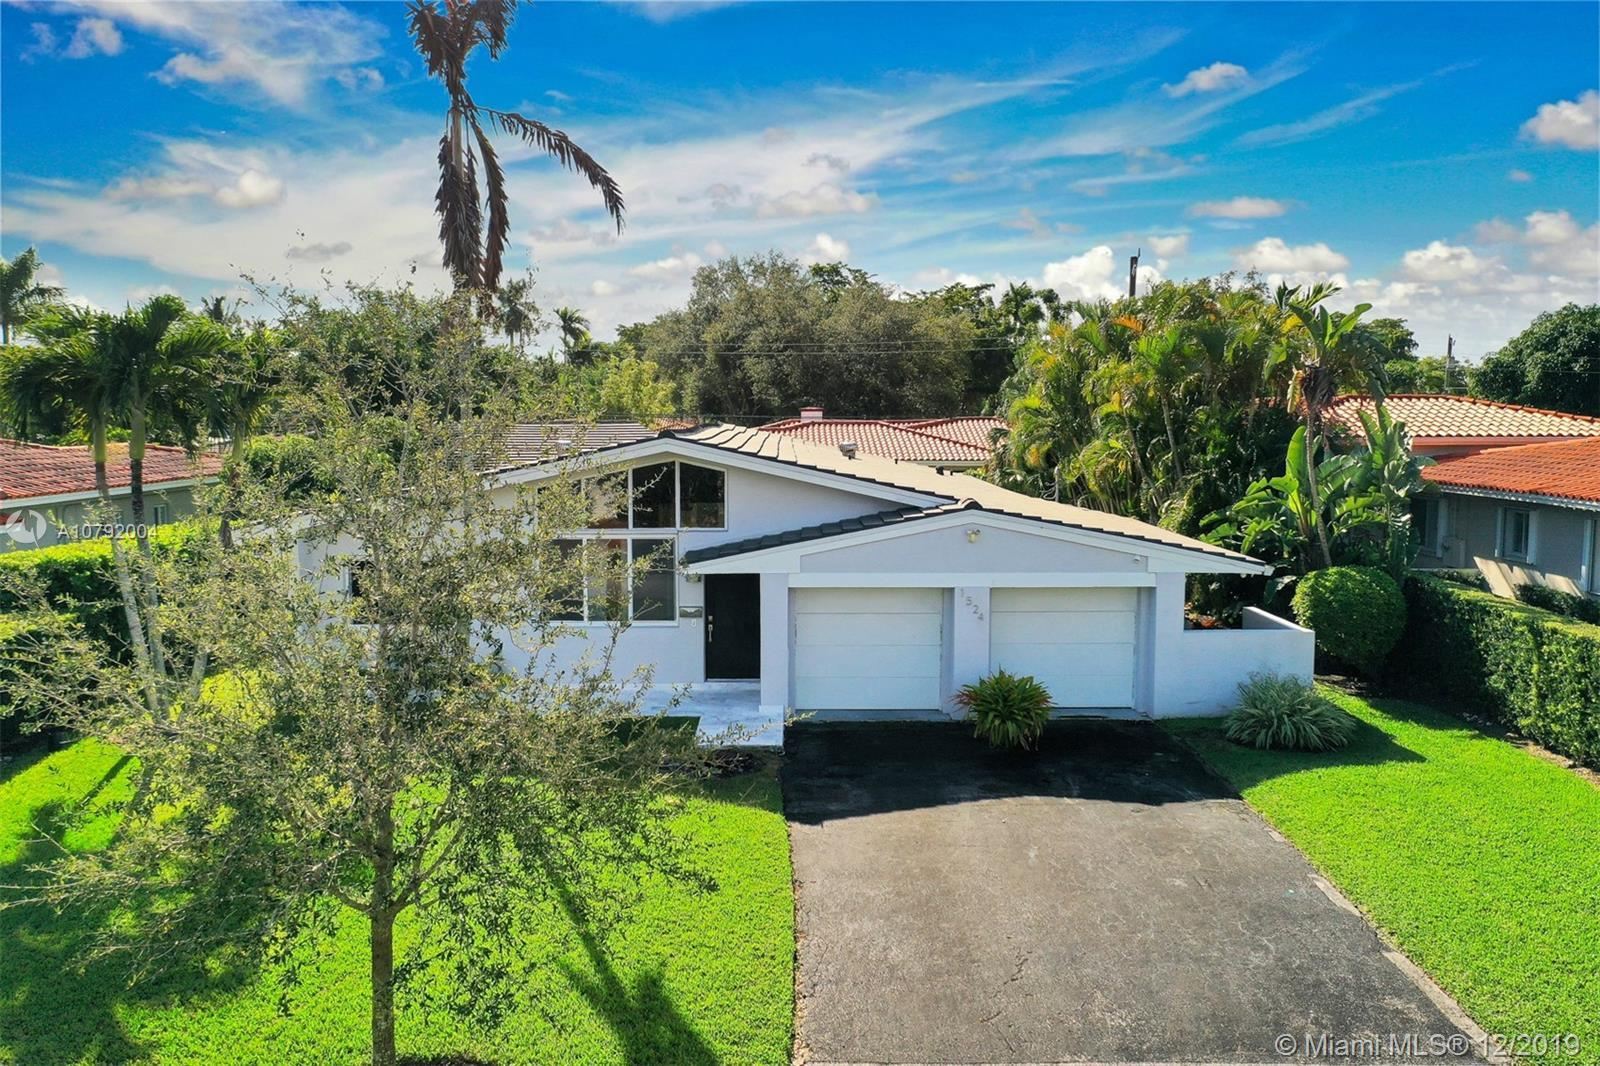 Charming Mid-Century home. This home features 3 bedrooms /3 baths and a floor plan that is fluid and